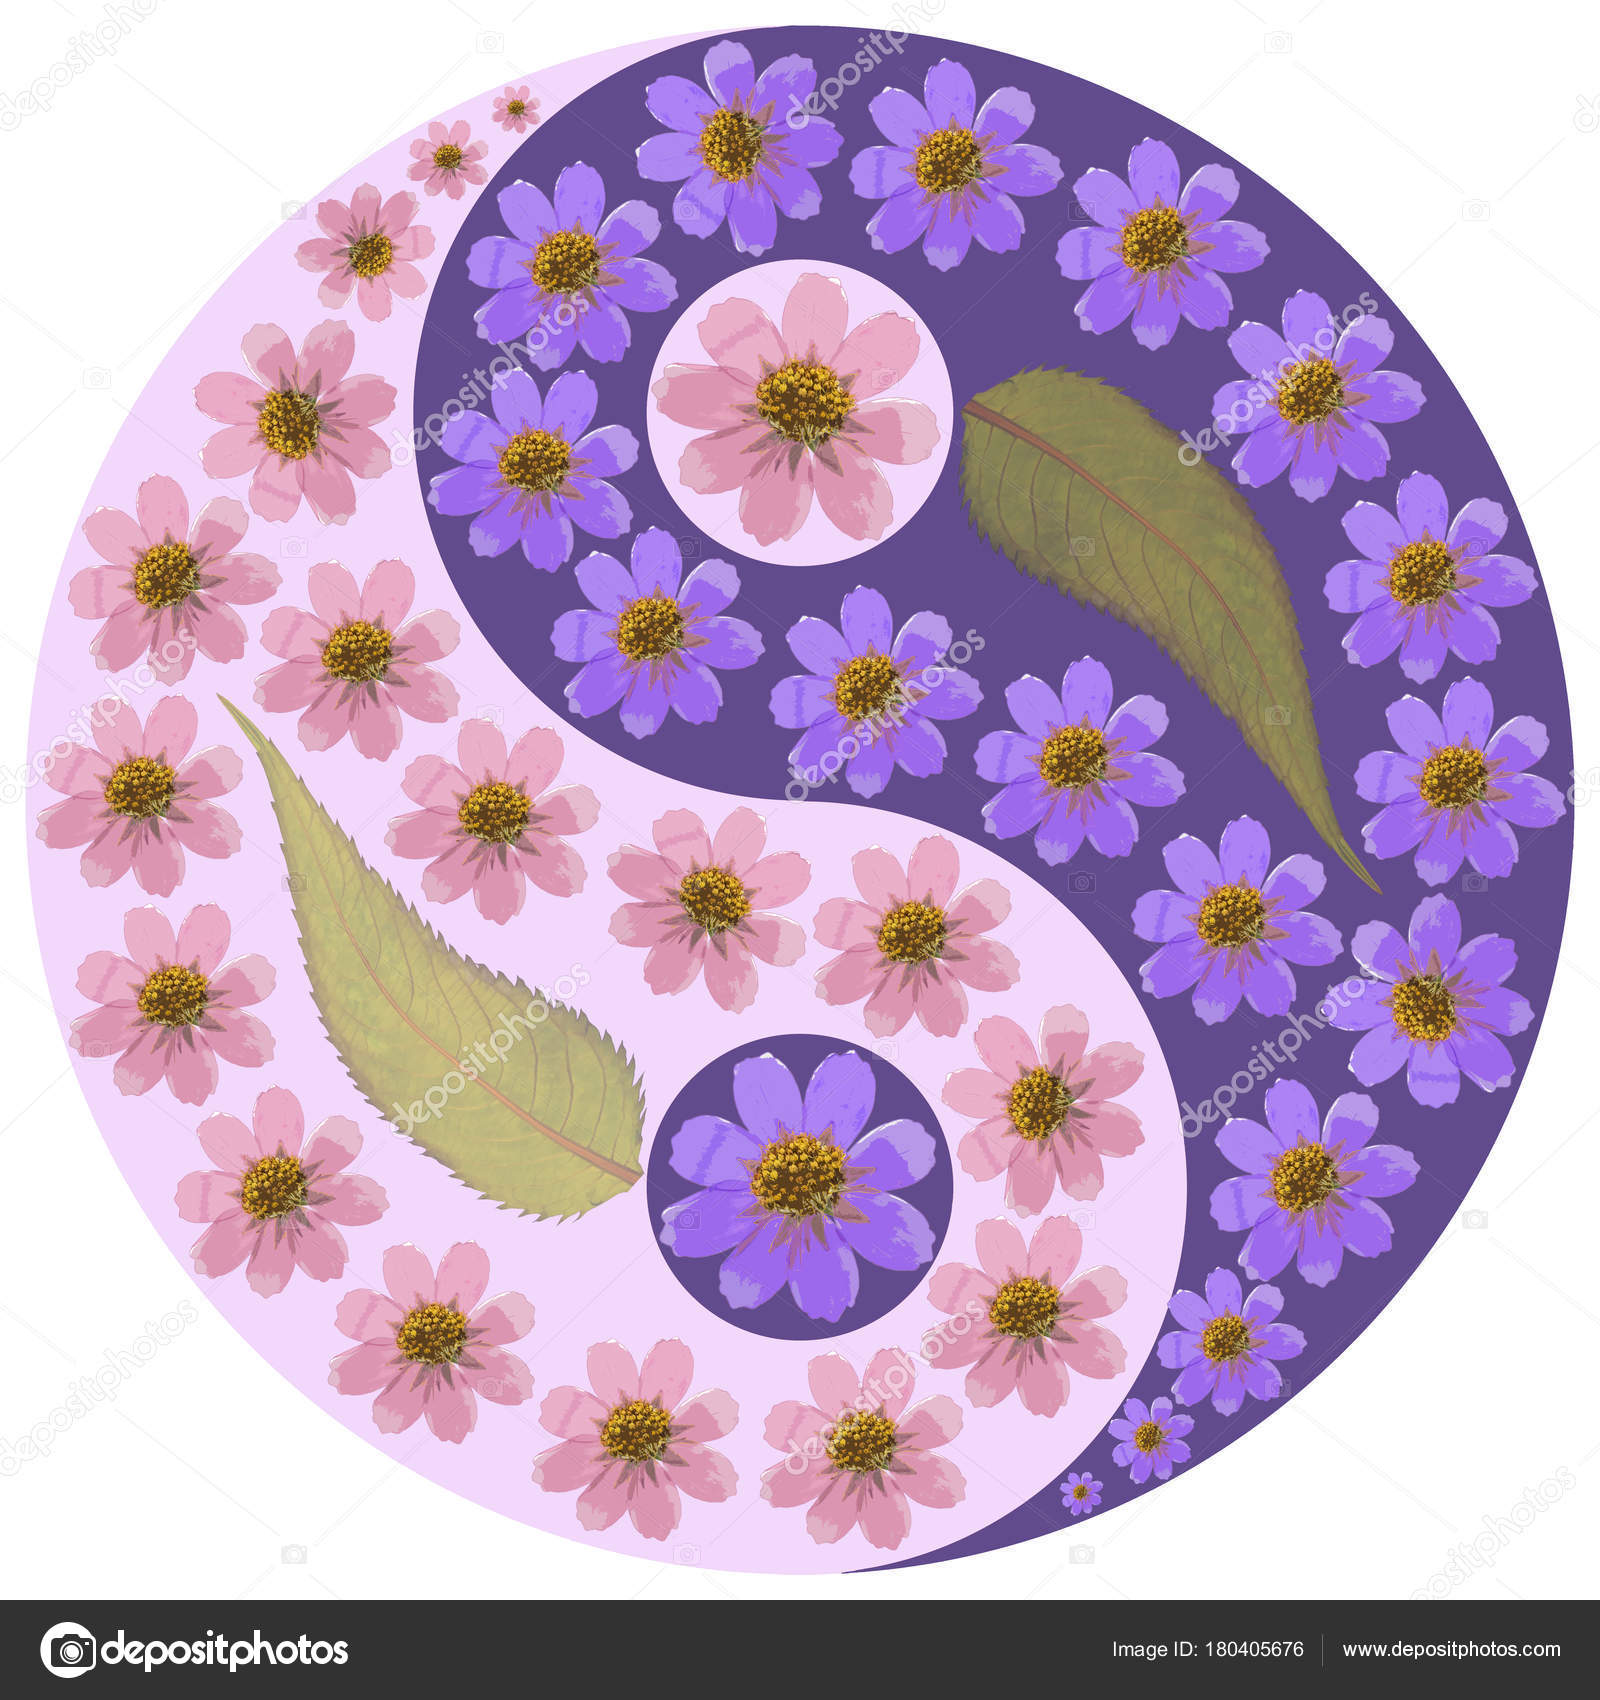 Remarkable Floral Yin Yang Symbol Stock Photo C Svrid79 180405676 Caraccident5 Cool Chair Designs And Ideas Caraccident5Info